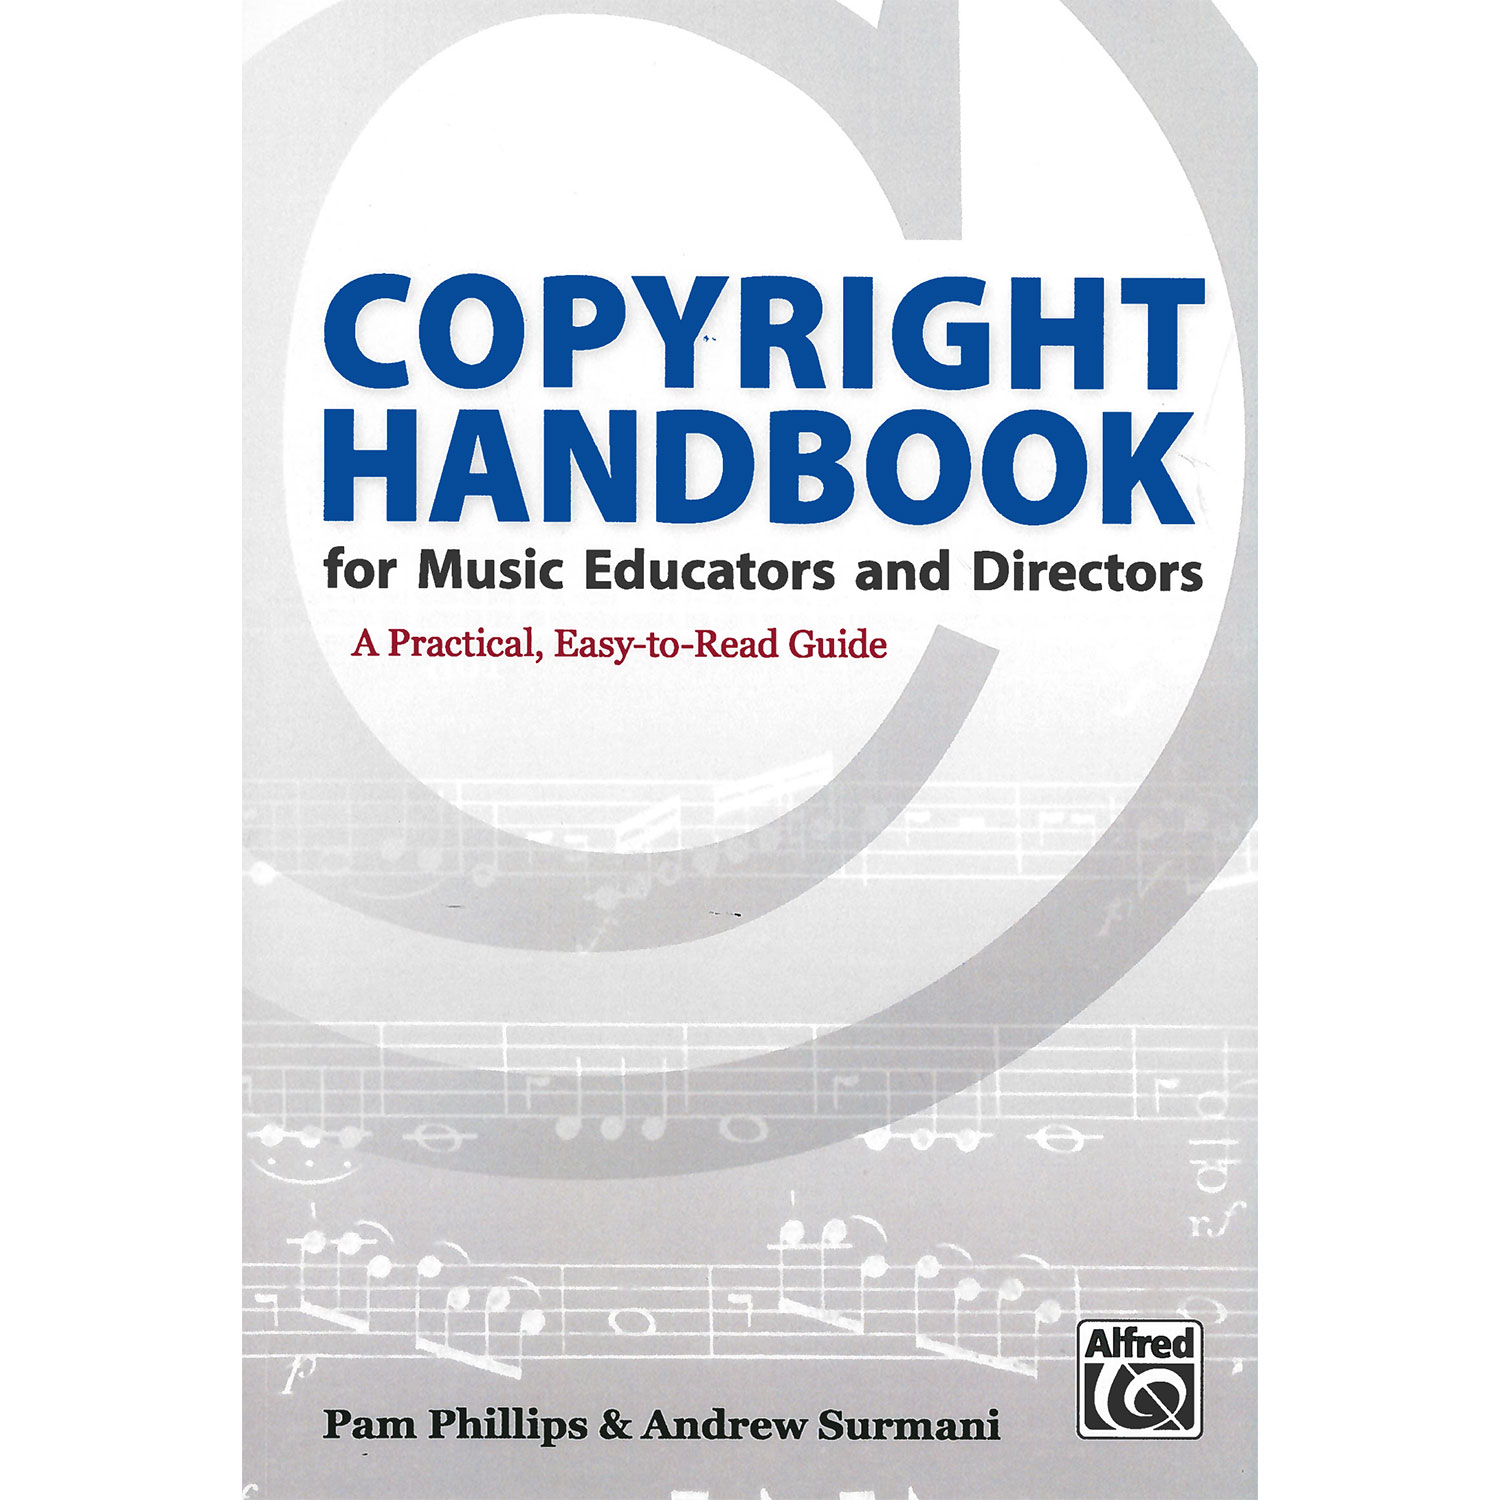 Copyright Handbook for Music Educators and Directors by Pam Phillips and Andrew Surmani